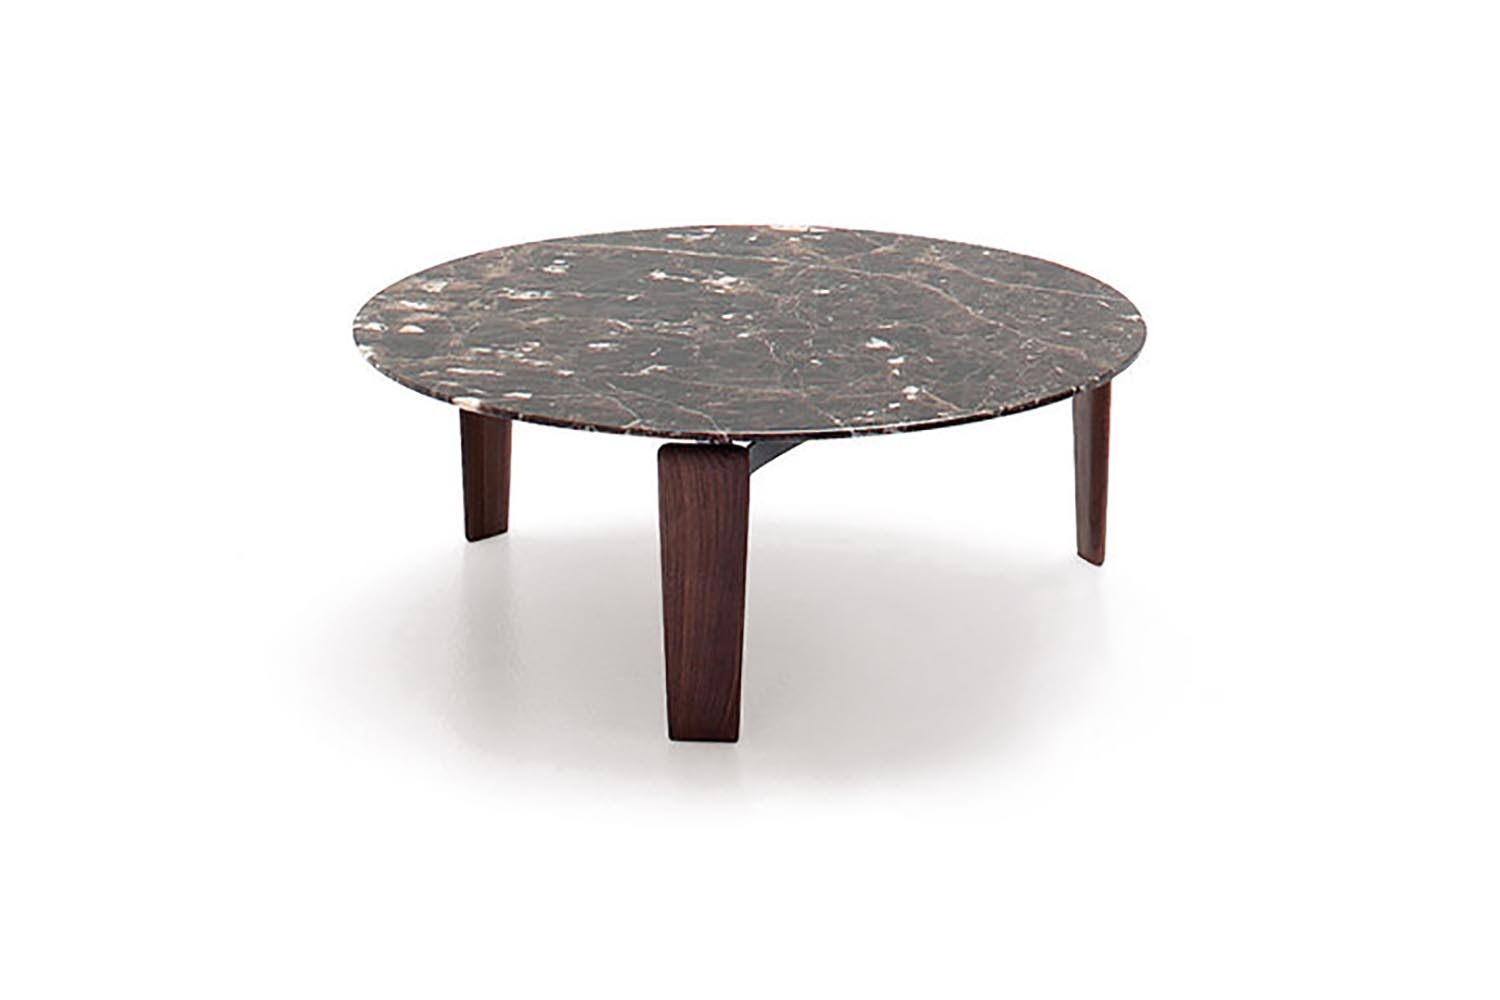 Tablet Coffee Table by Claesson Koivisto Rune for Arflex